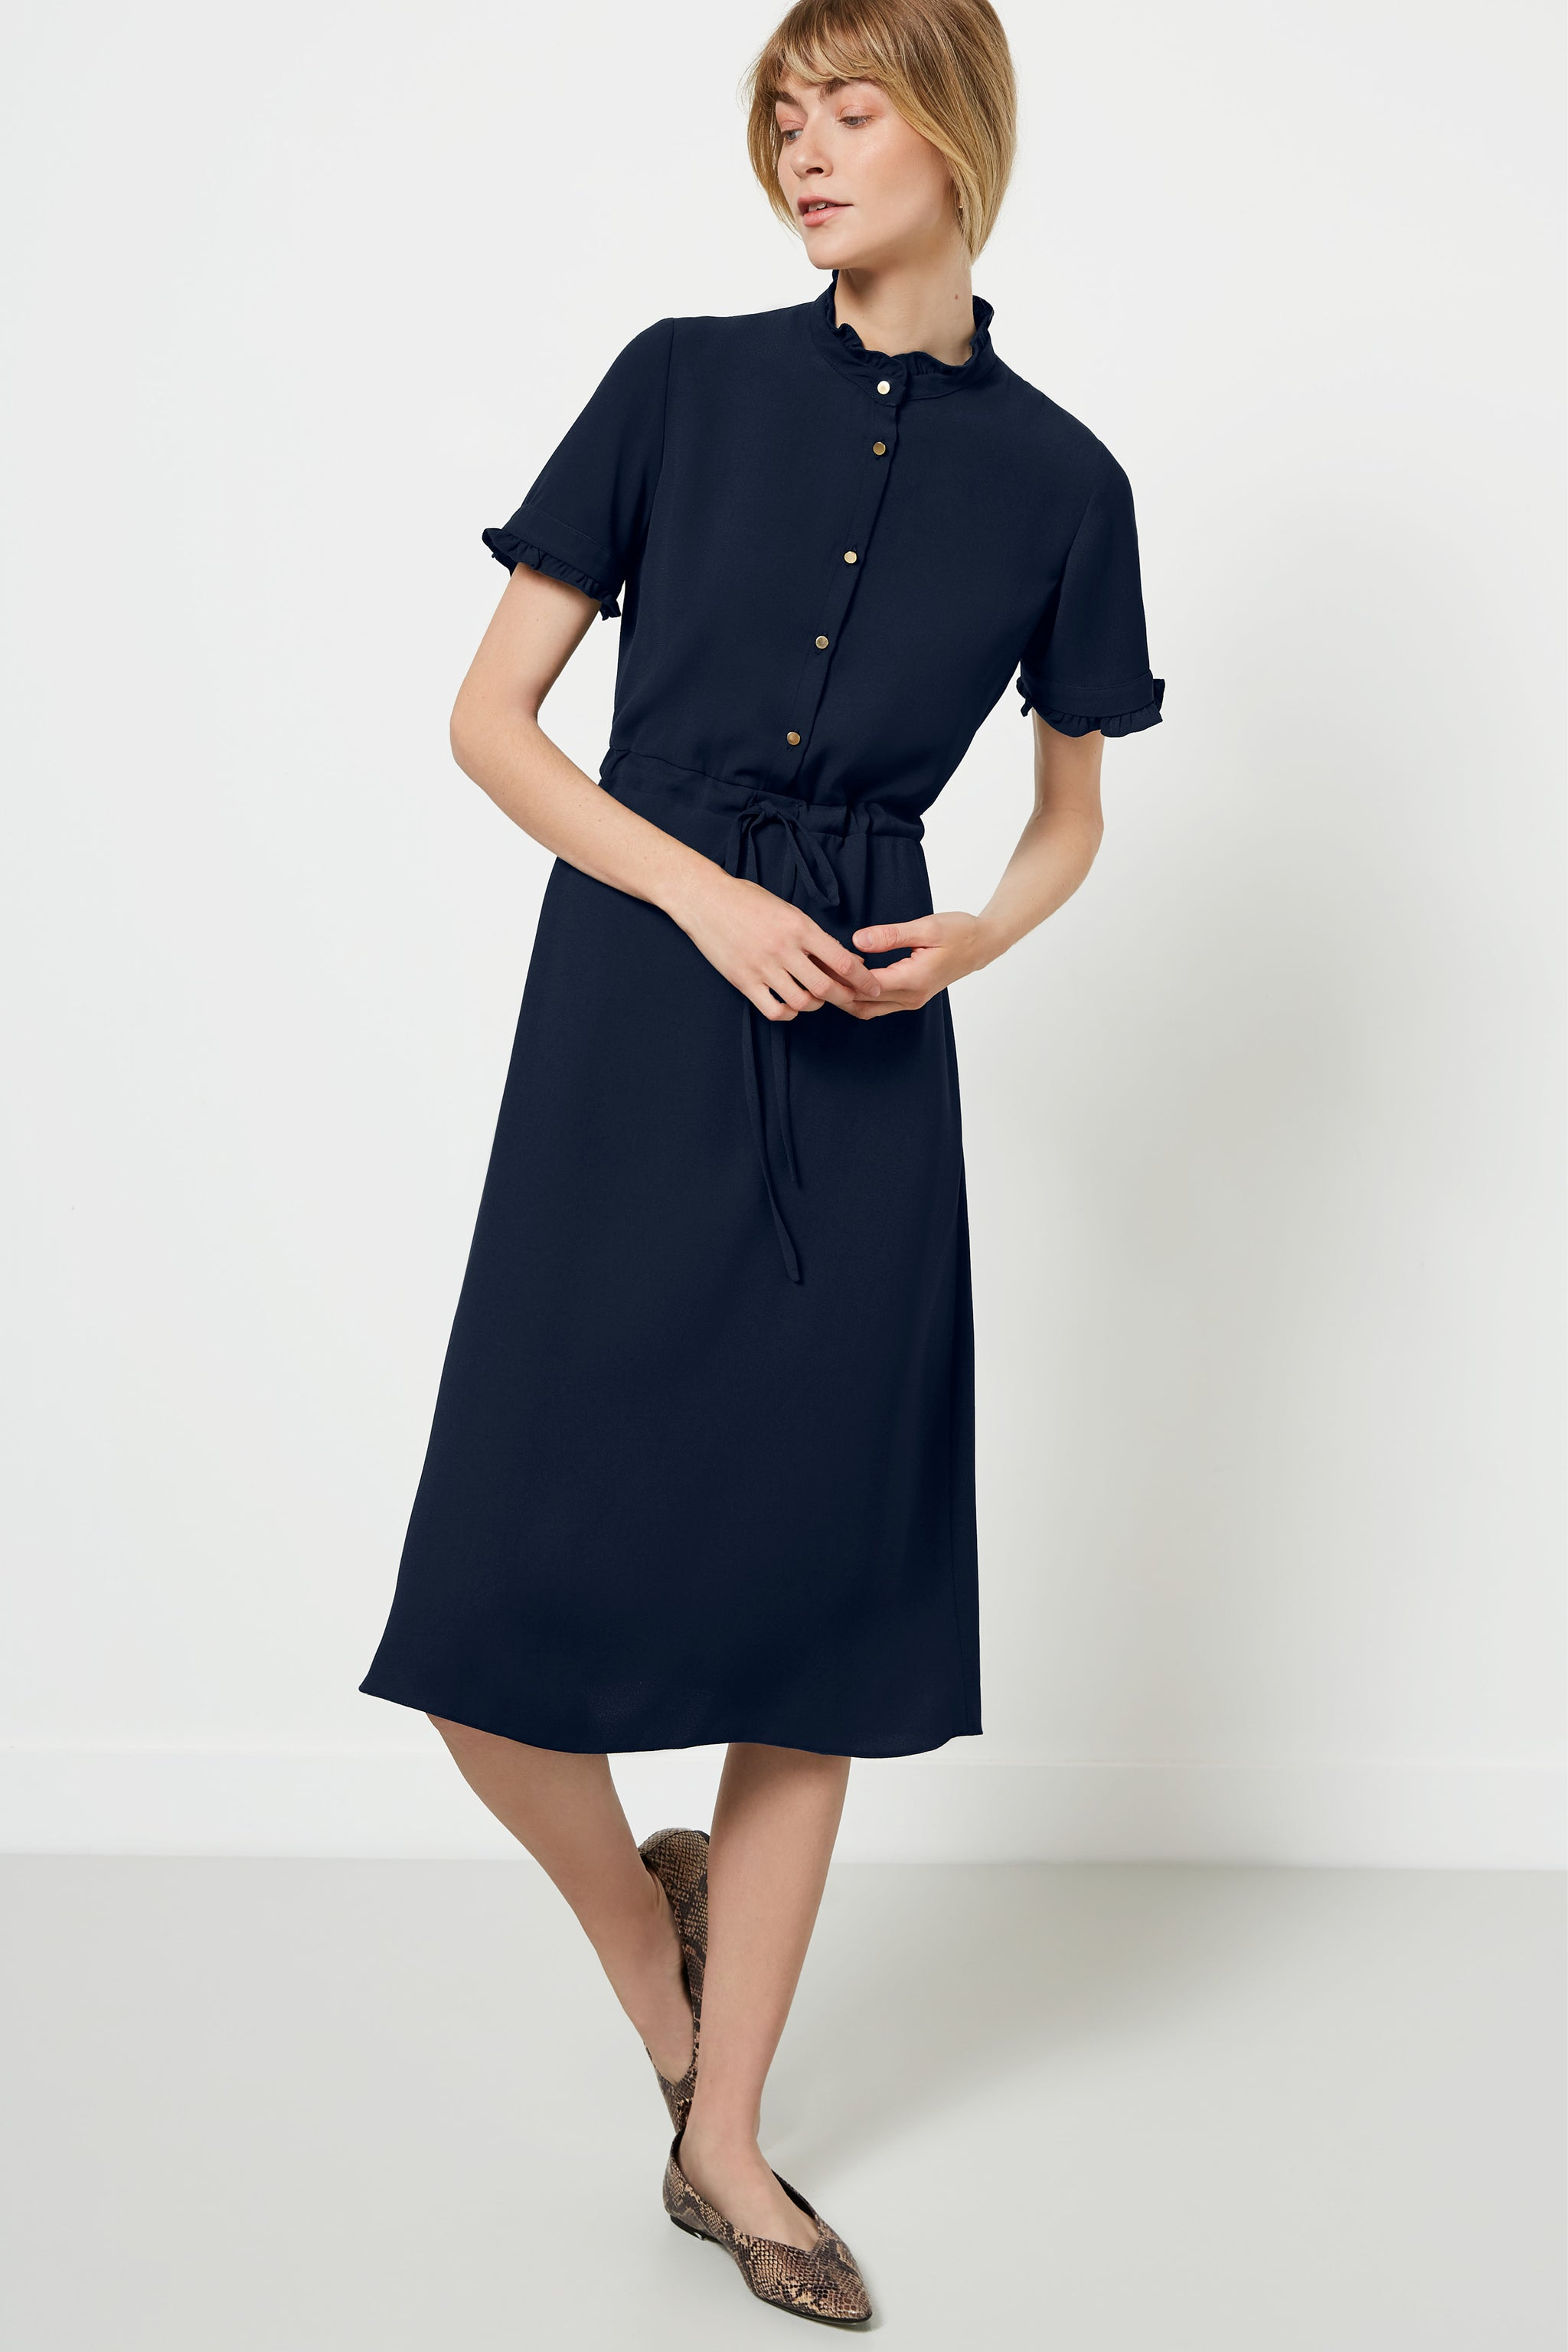 Canterbury Navy Dress